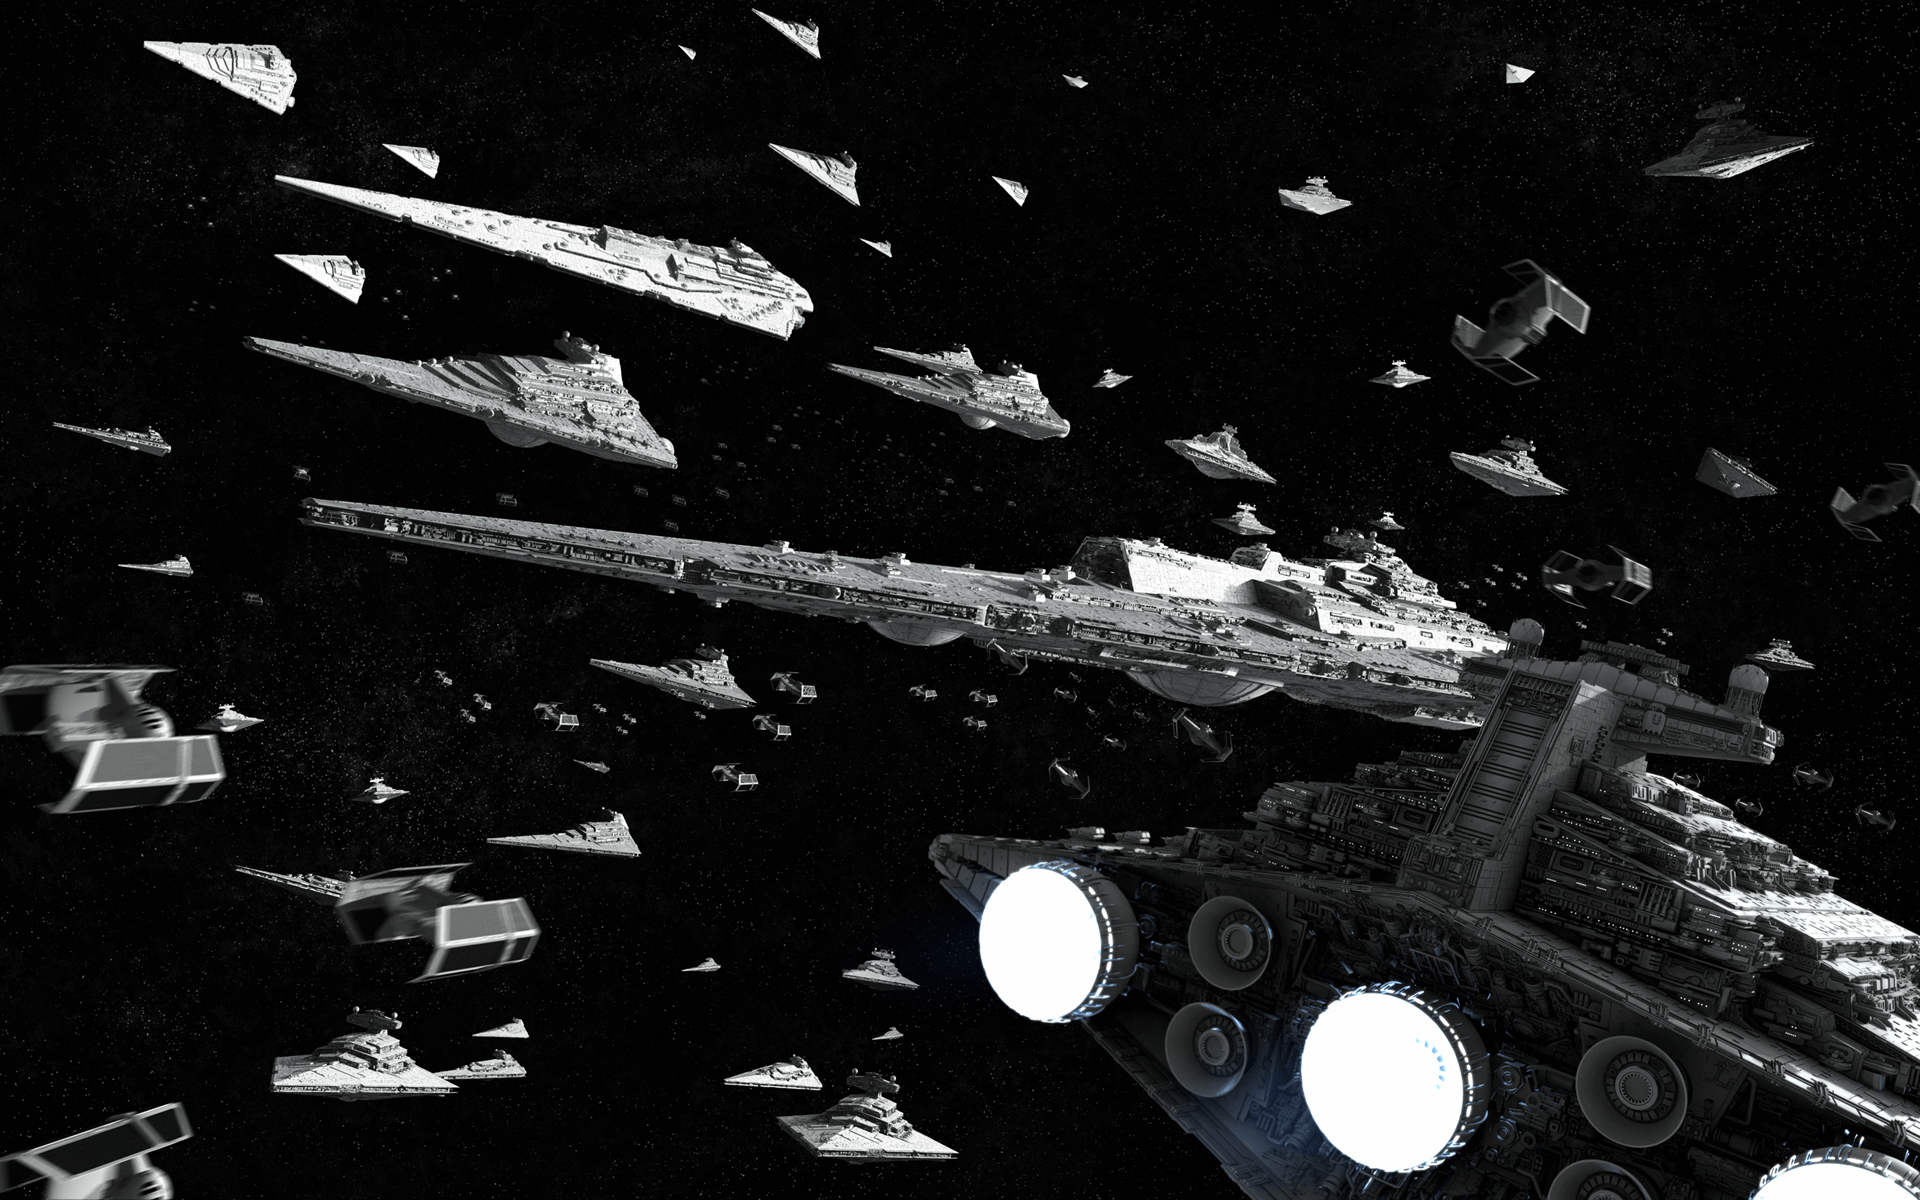 star wars spaceship battlepng the star wars report space battle png 1920 1200